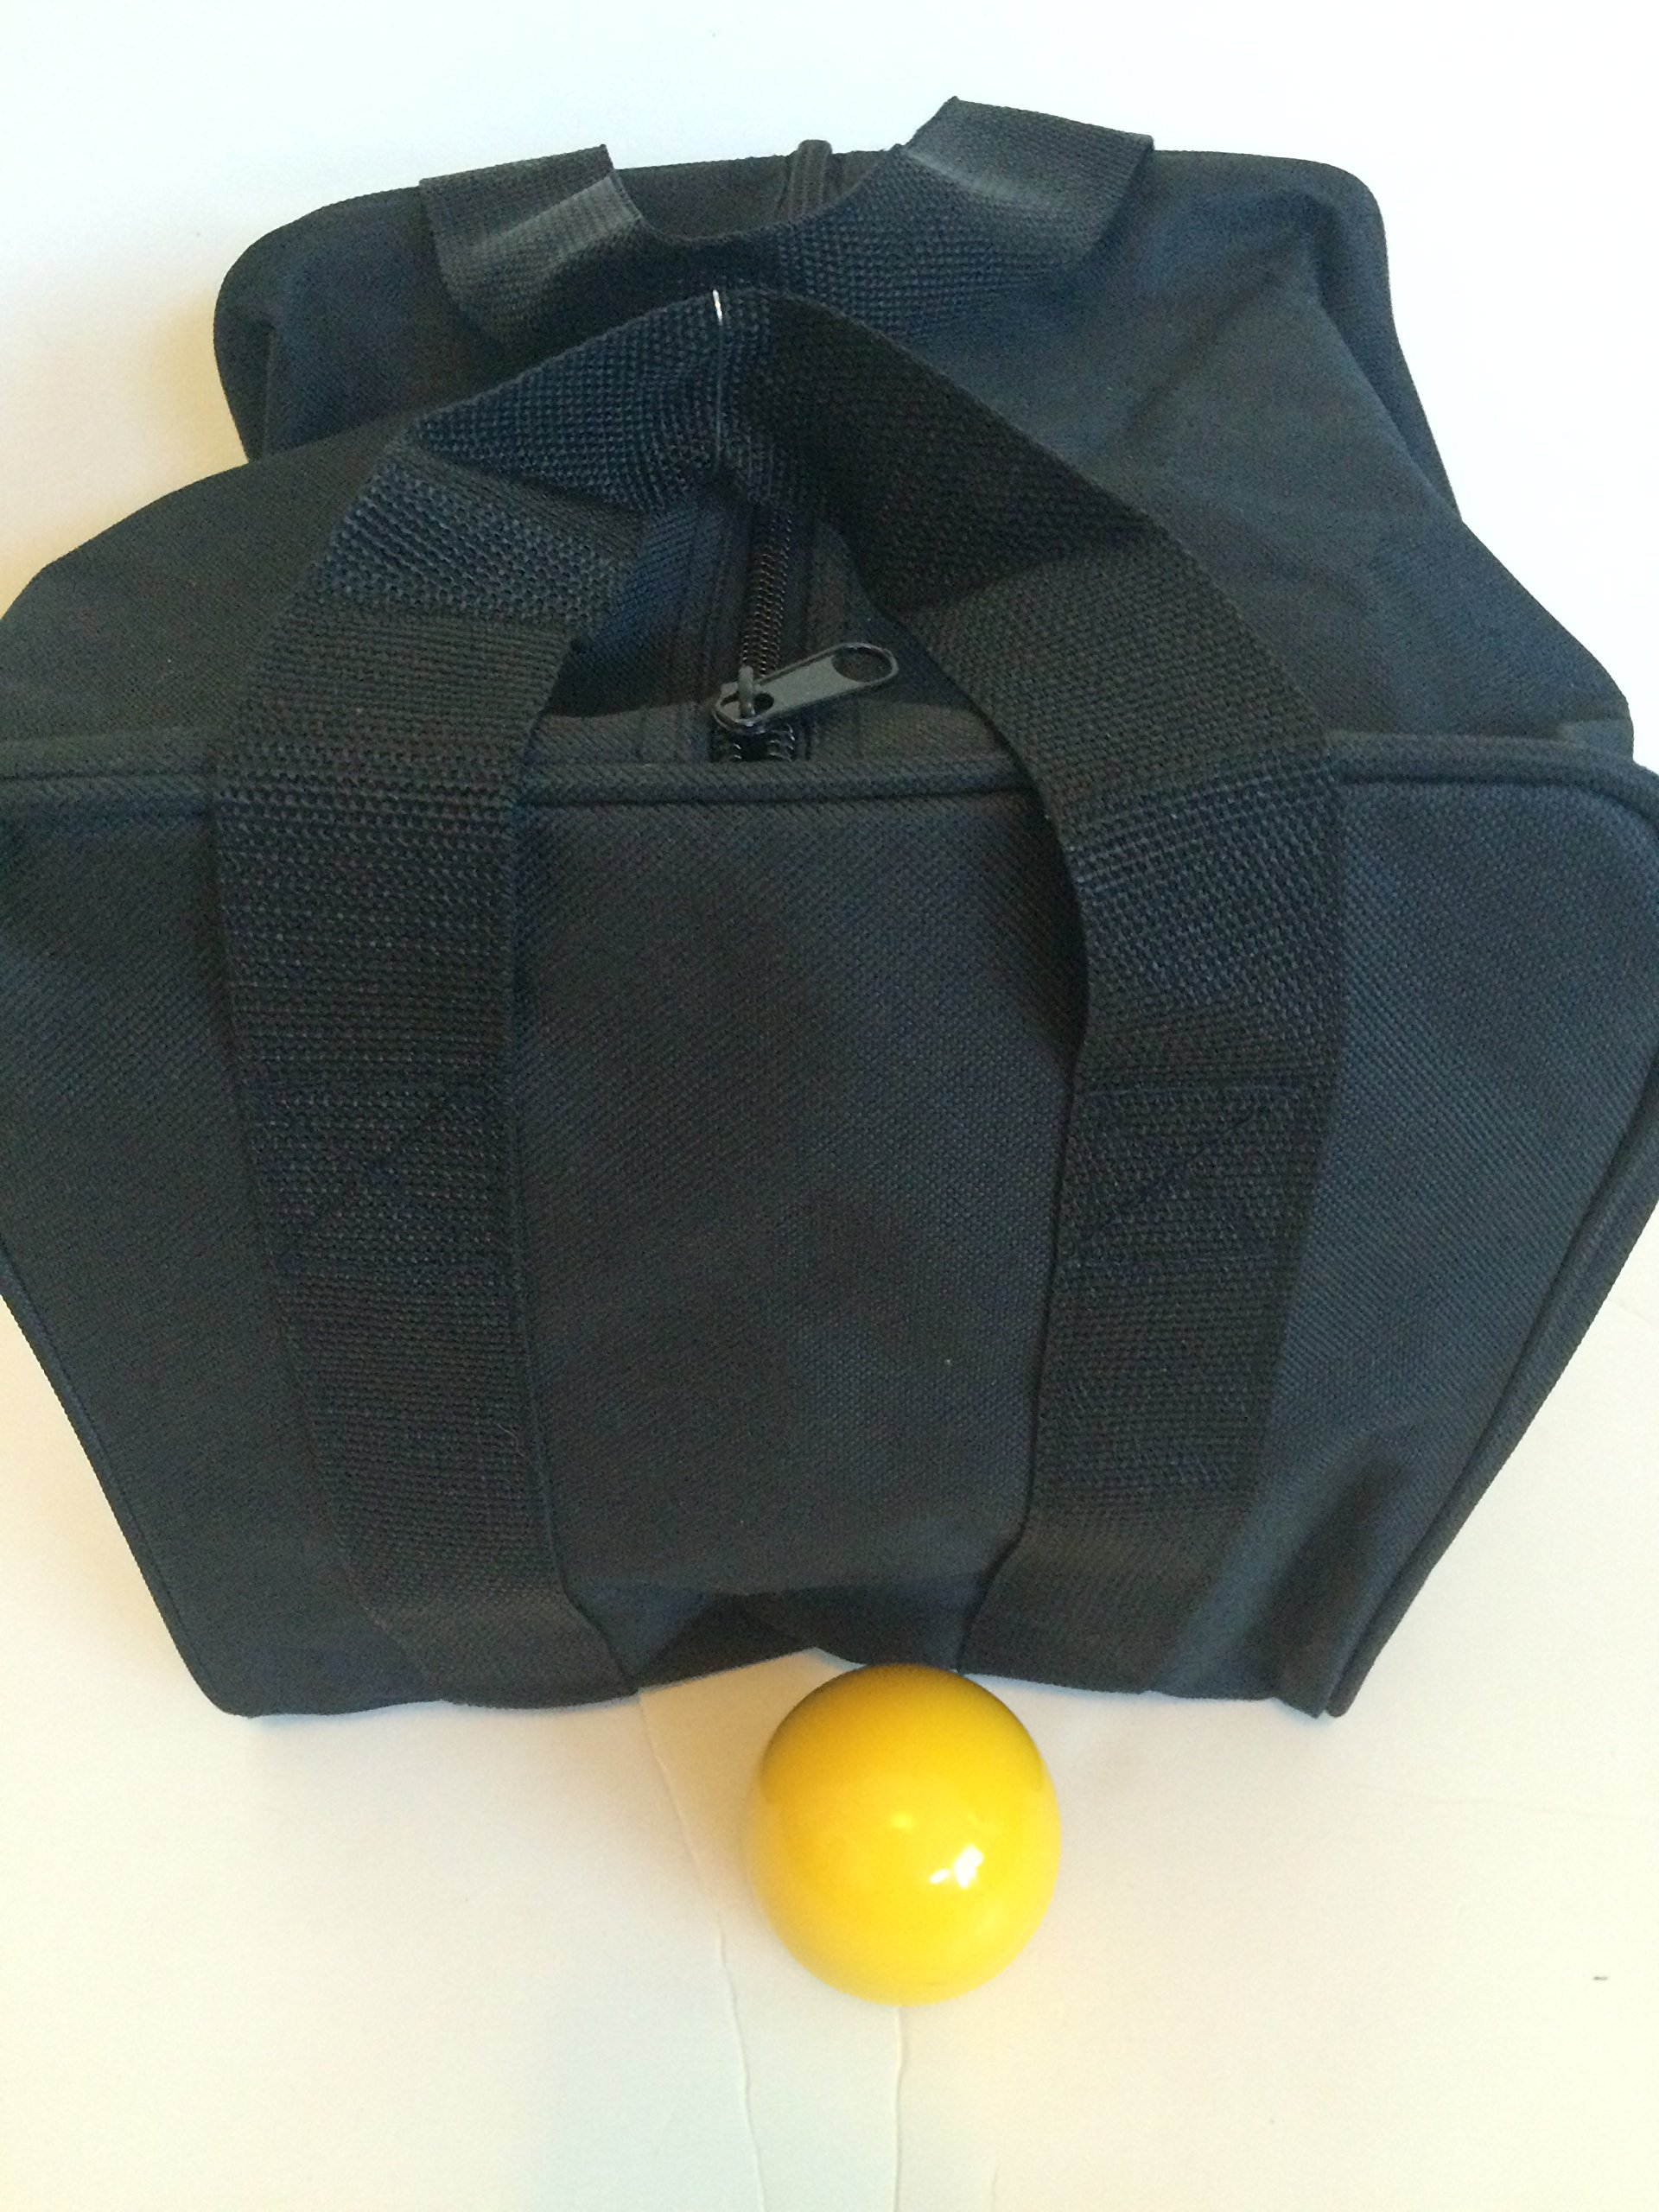 Unique Bocce Accessories Package - Extra Heavy Duty Nylon Bocce Bag (Black with Black Handles) and yellow pallina